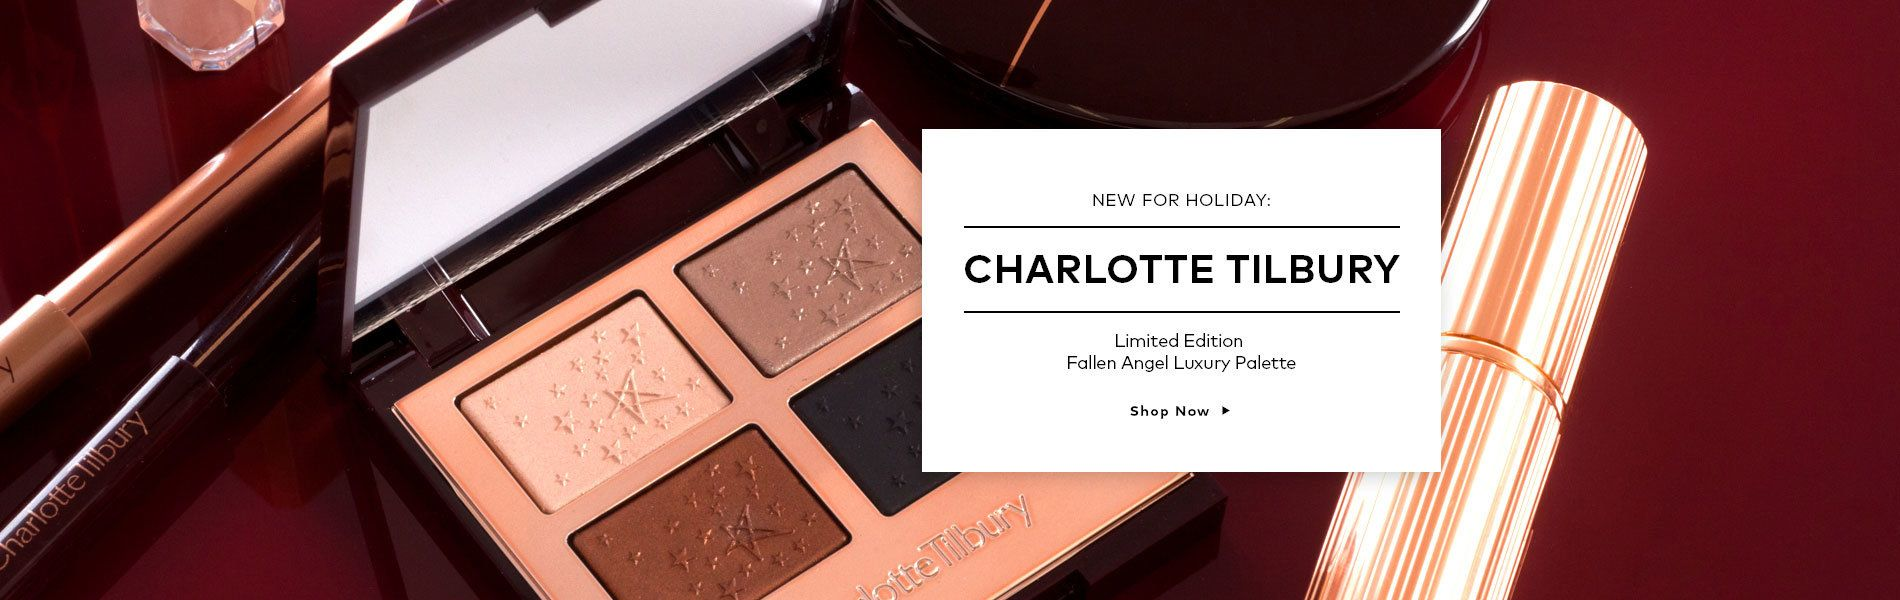 NEW! | at Beautylish, Charlotte Tilbury LE Fallen Angel Luxury Palette and Holiday Collection/Supermodel Collection available at Beautylish!